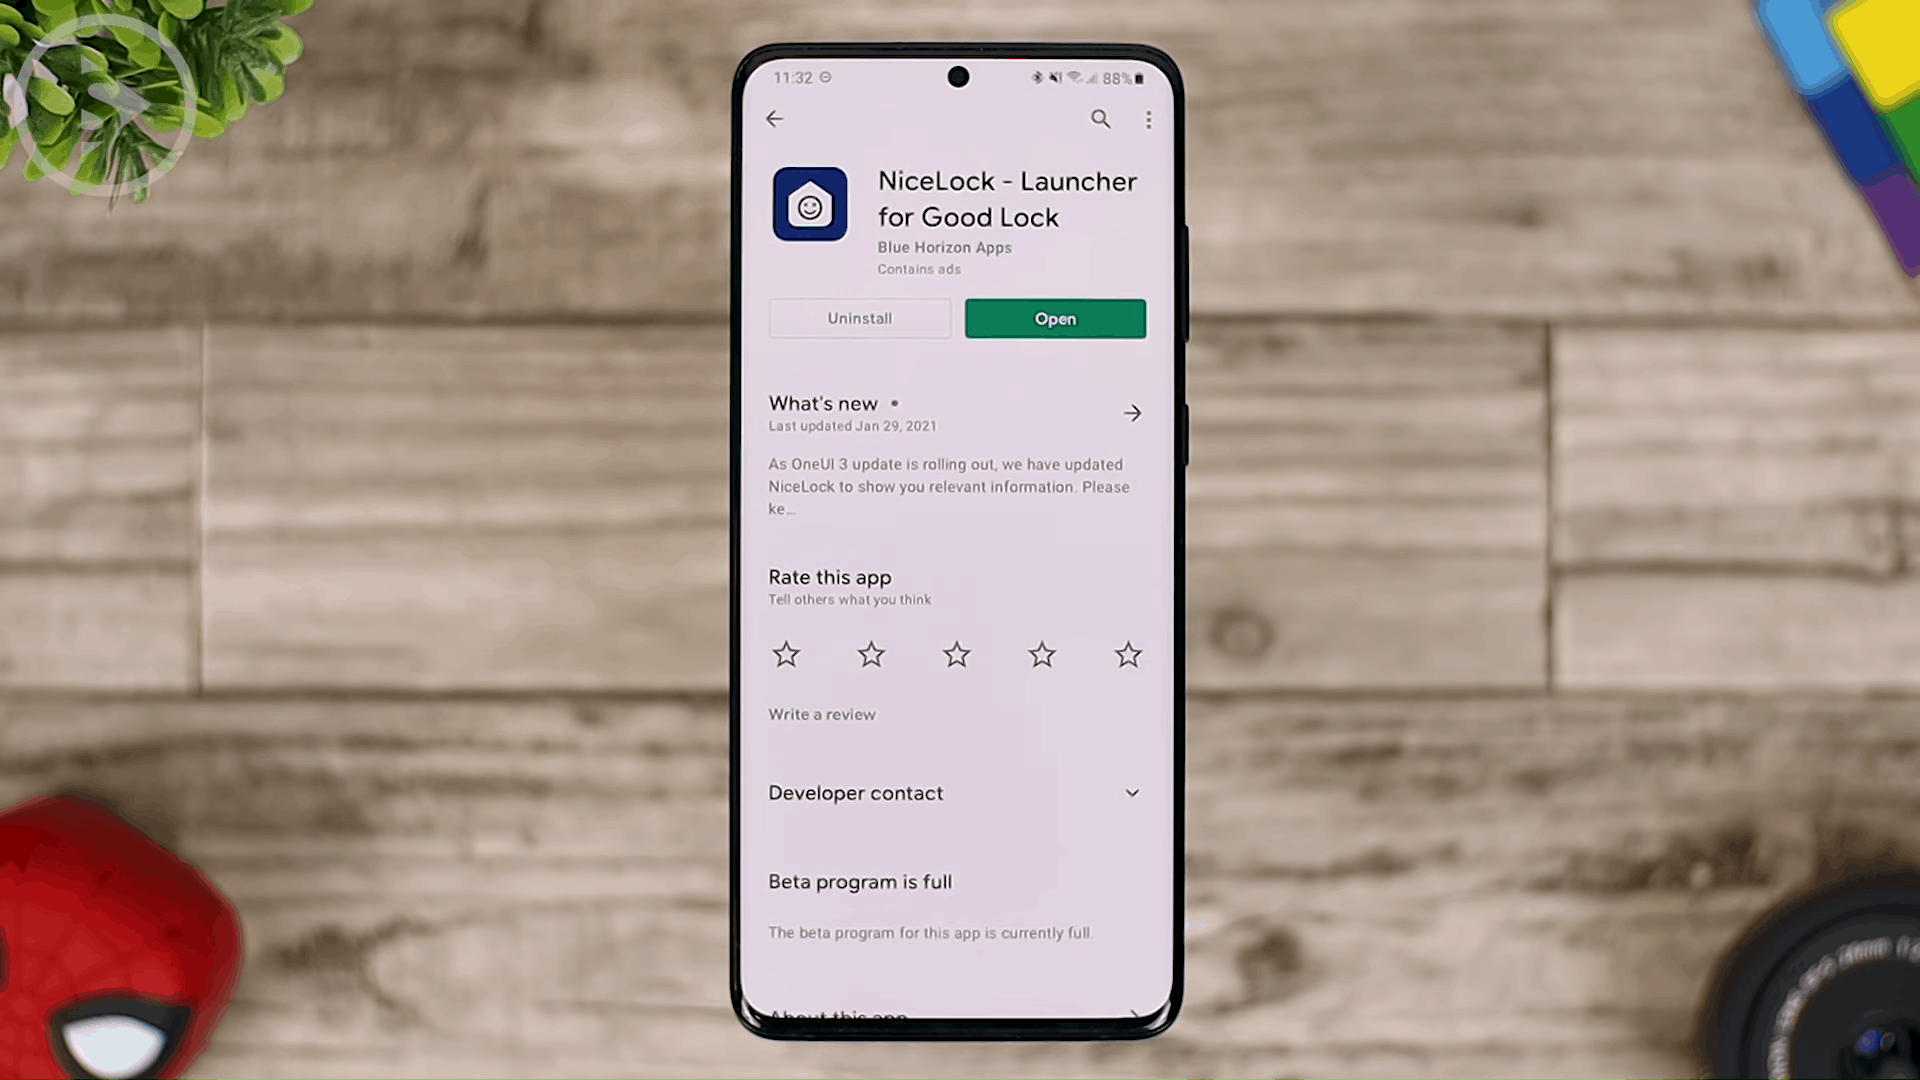 NiceLock App - Complete Tips on How to Install the GoodLock in 2021